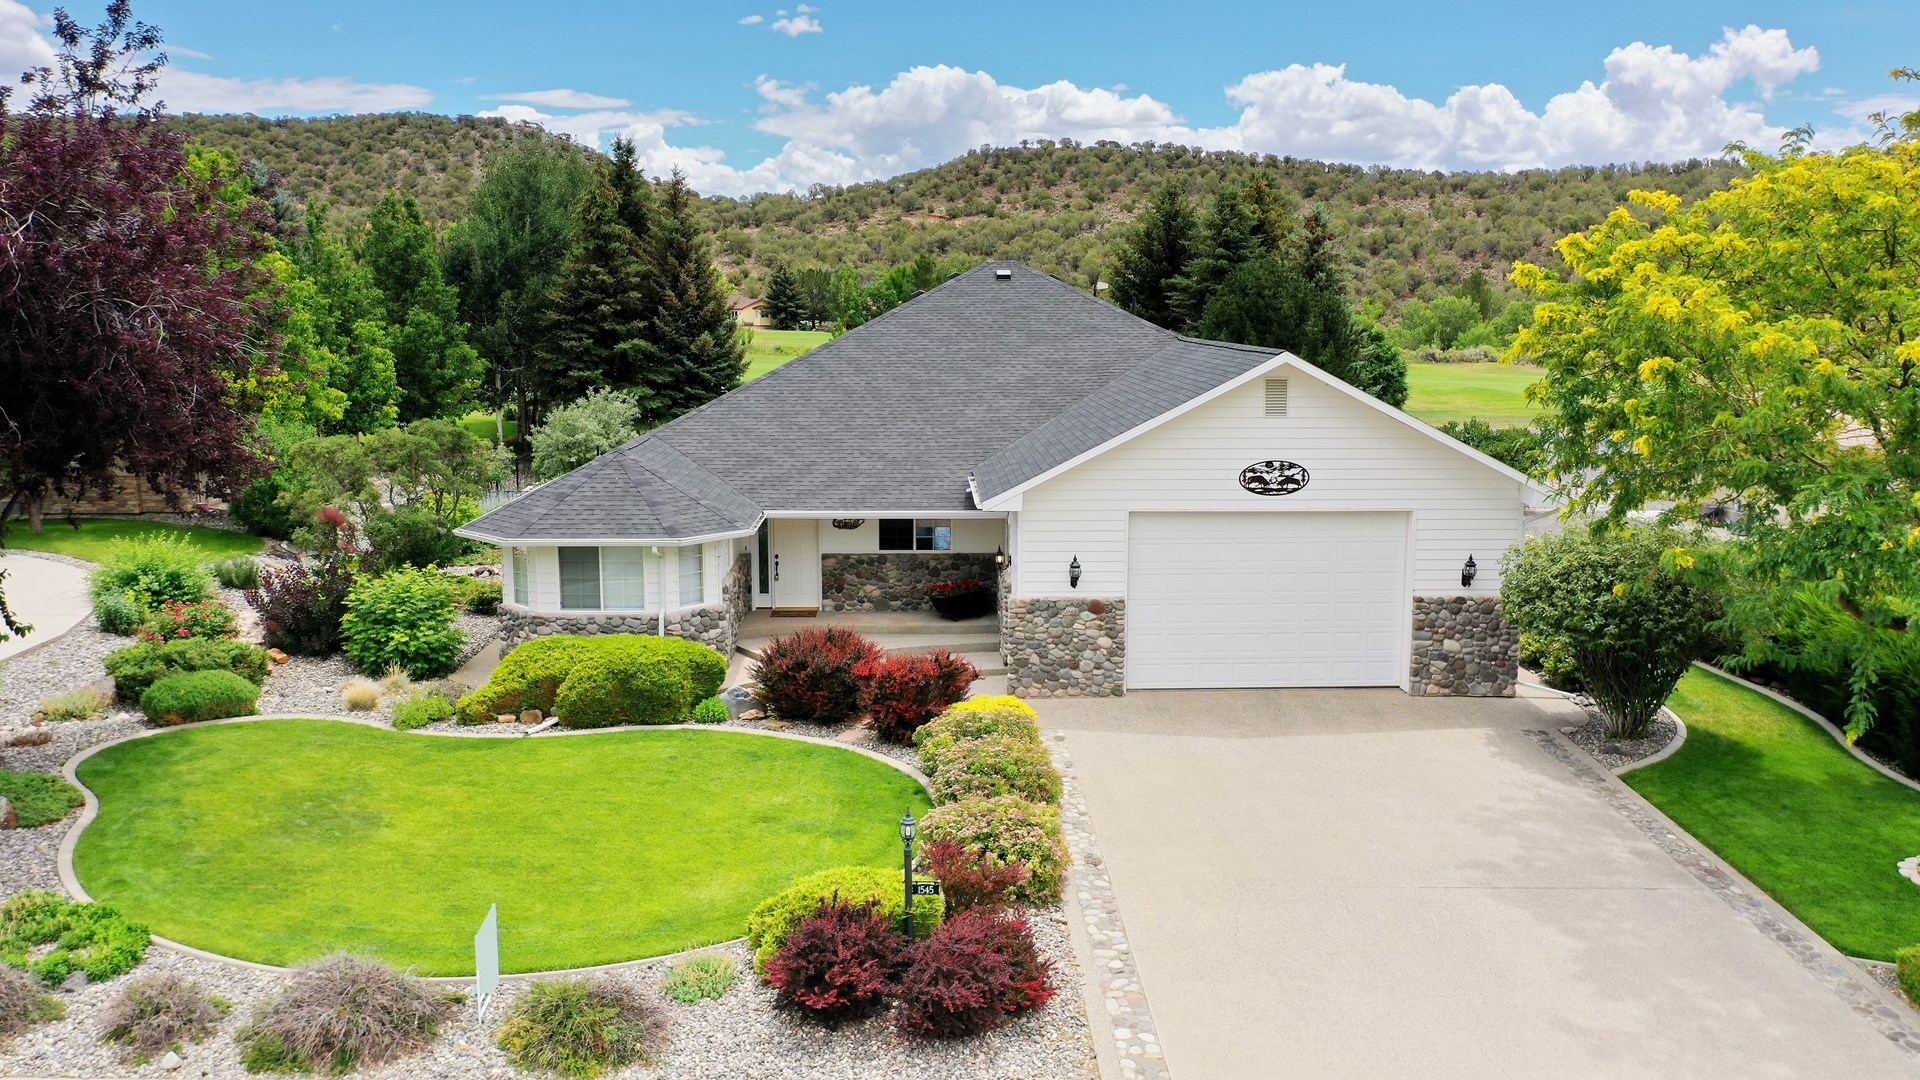 Colorado Home For Sale on First Fairway at Golf Course